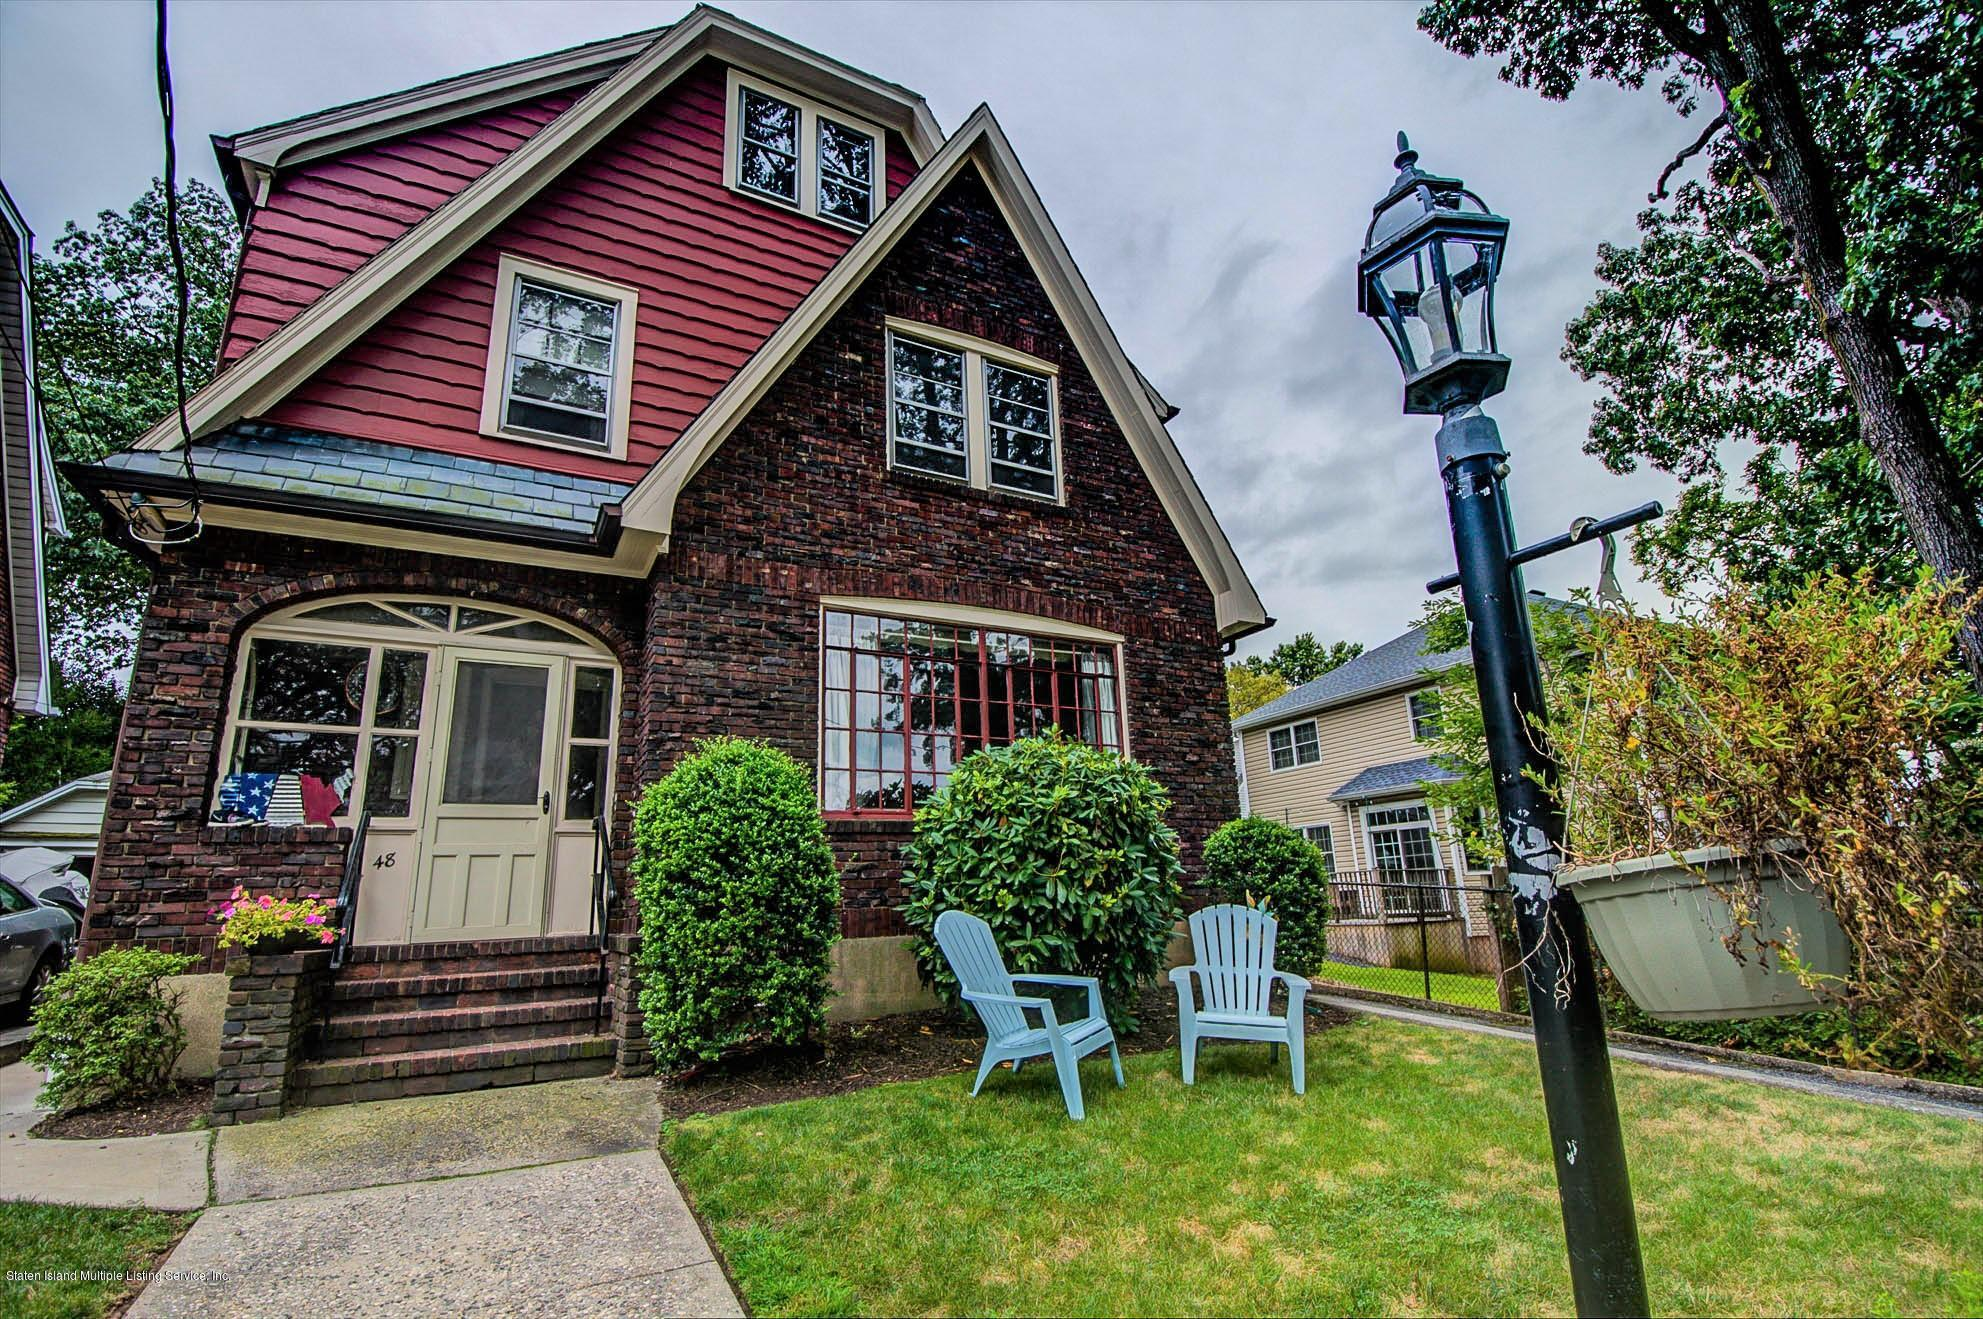 Single Family - Detached 48 Park Court  Staten Island, NY 10301, MLS-1131900-2